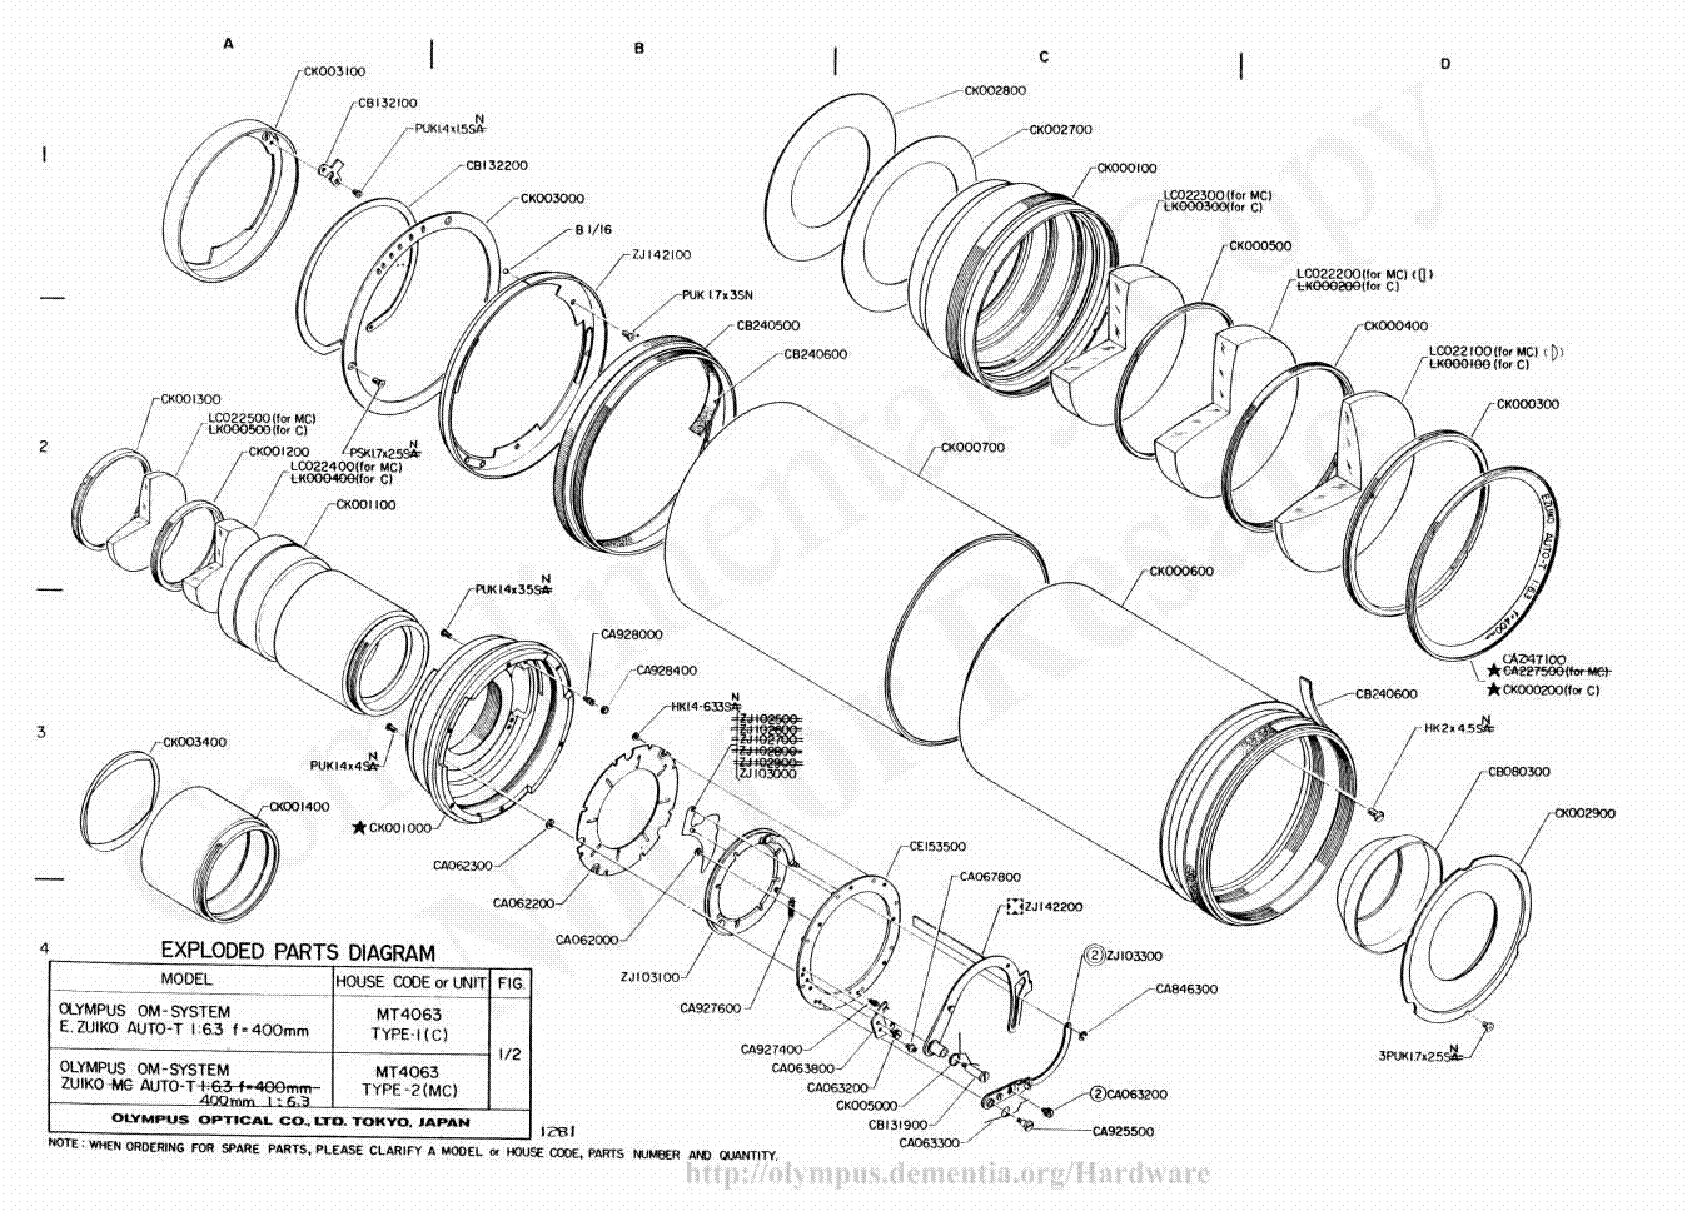 Olympus 400mm F6 3 Exploded Parts Diagram Service Manual Download Schematics Eeprom Repair